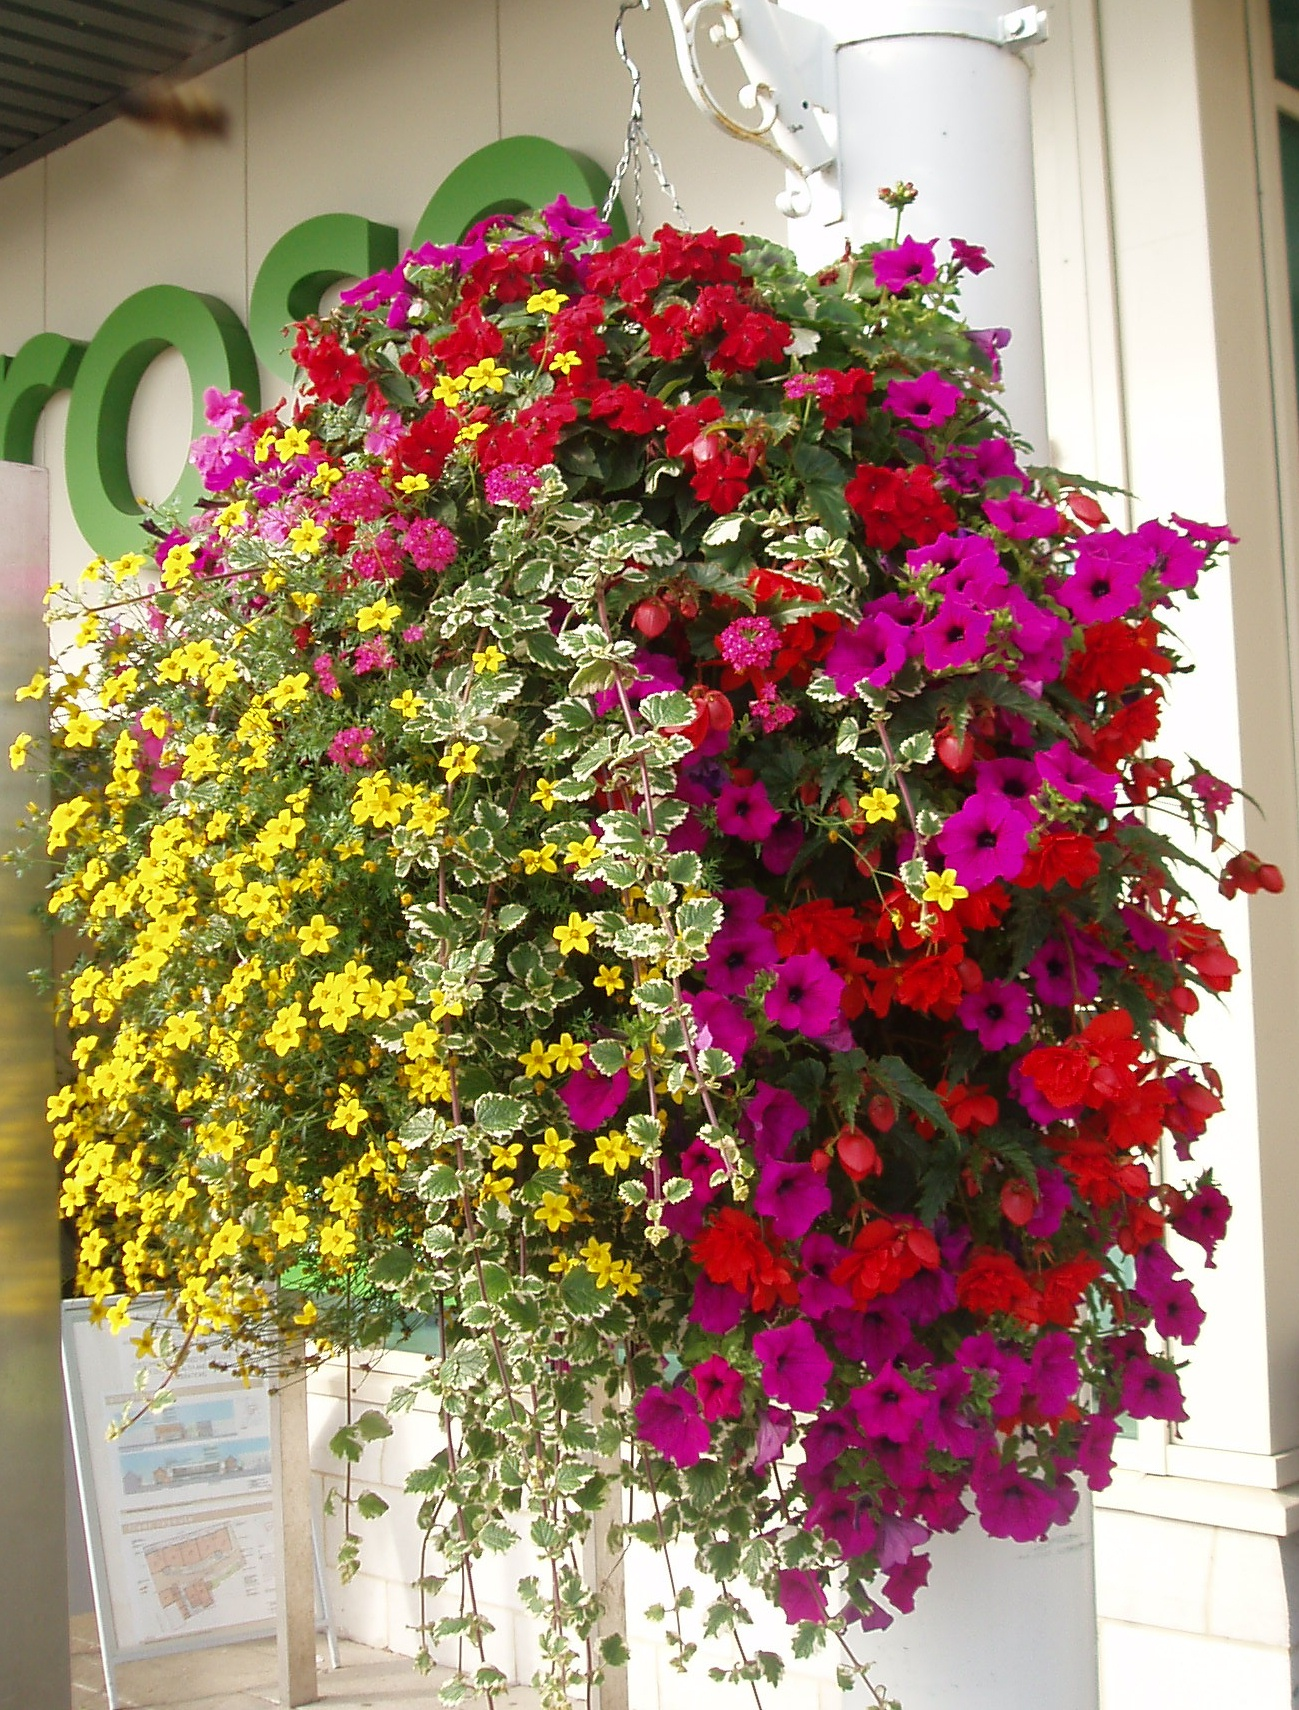 Best plants for hanging baskets Ideas with Images on Plant Hanging Ideas  id=47826